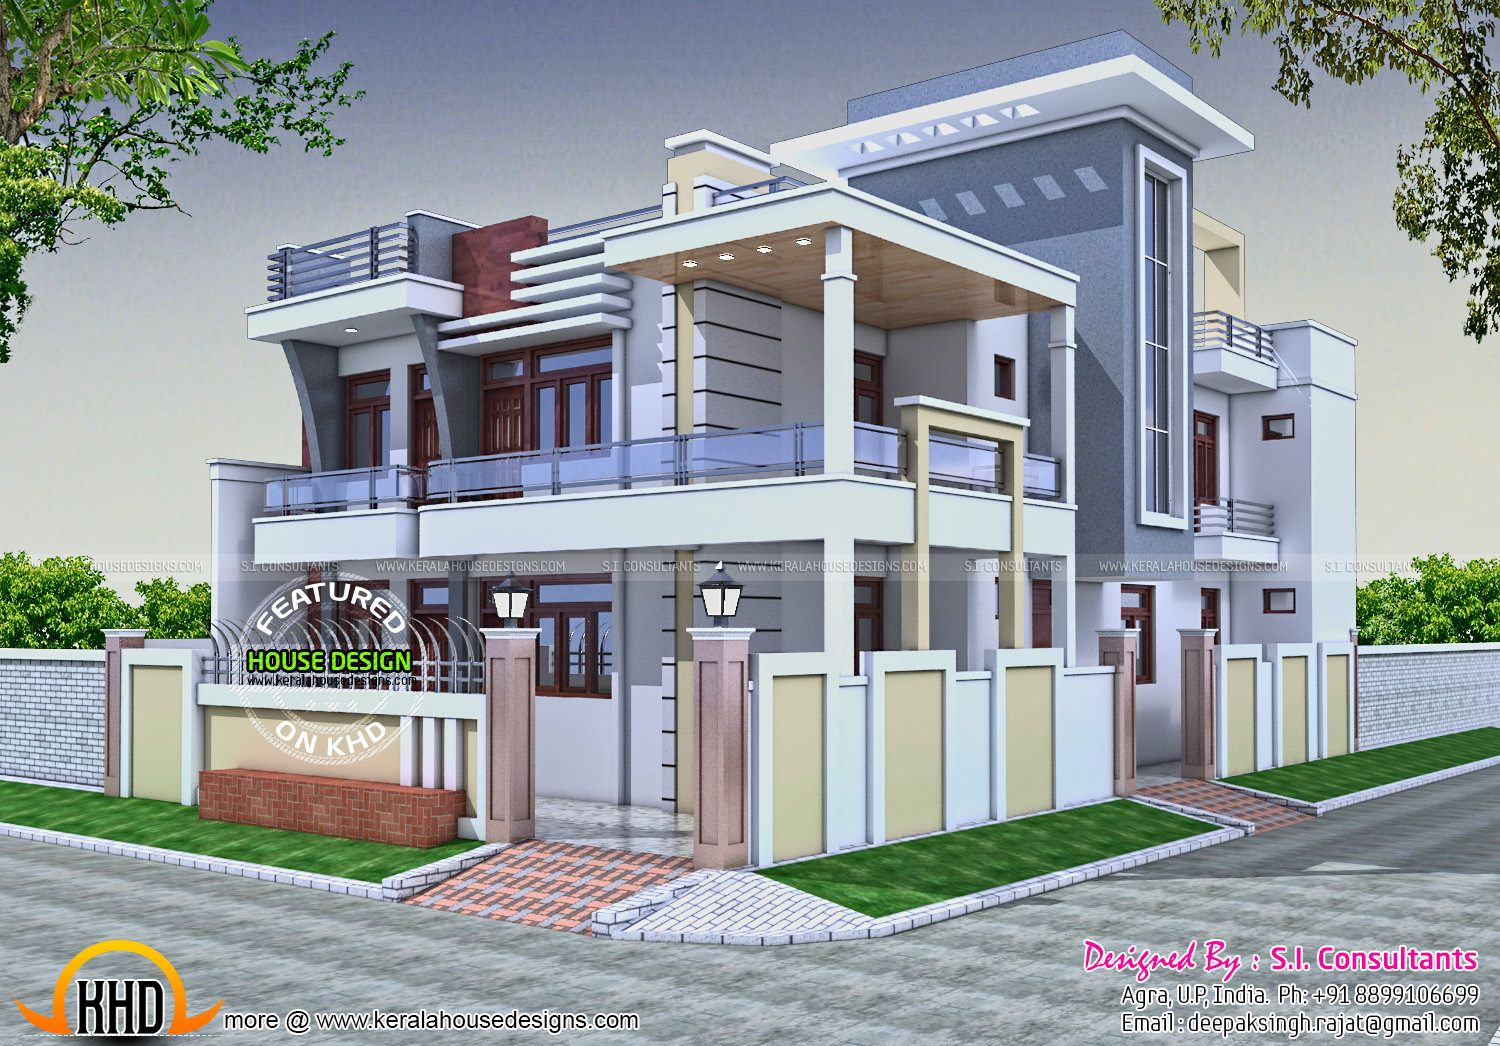 Presenting a superb colonial style inspiring houses design at an area of 3000 sq this great design is from kerala studio these design comprises of several